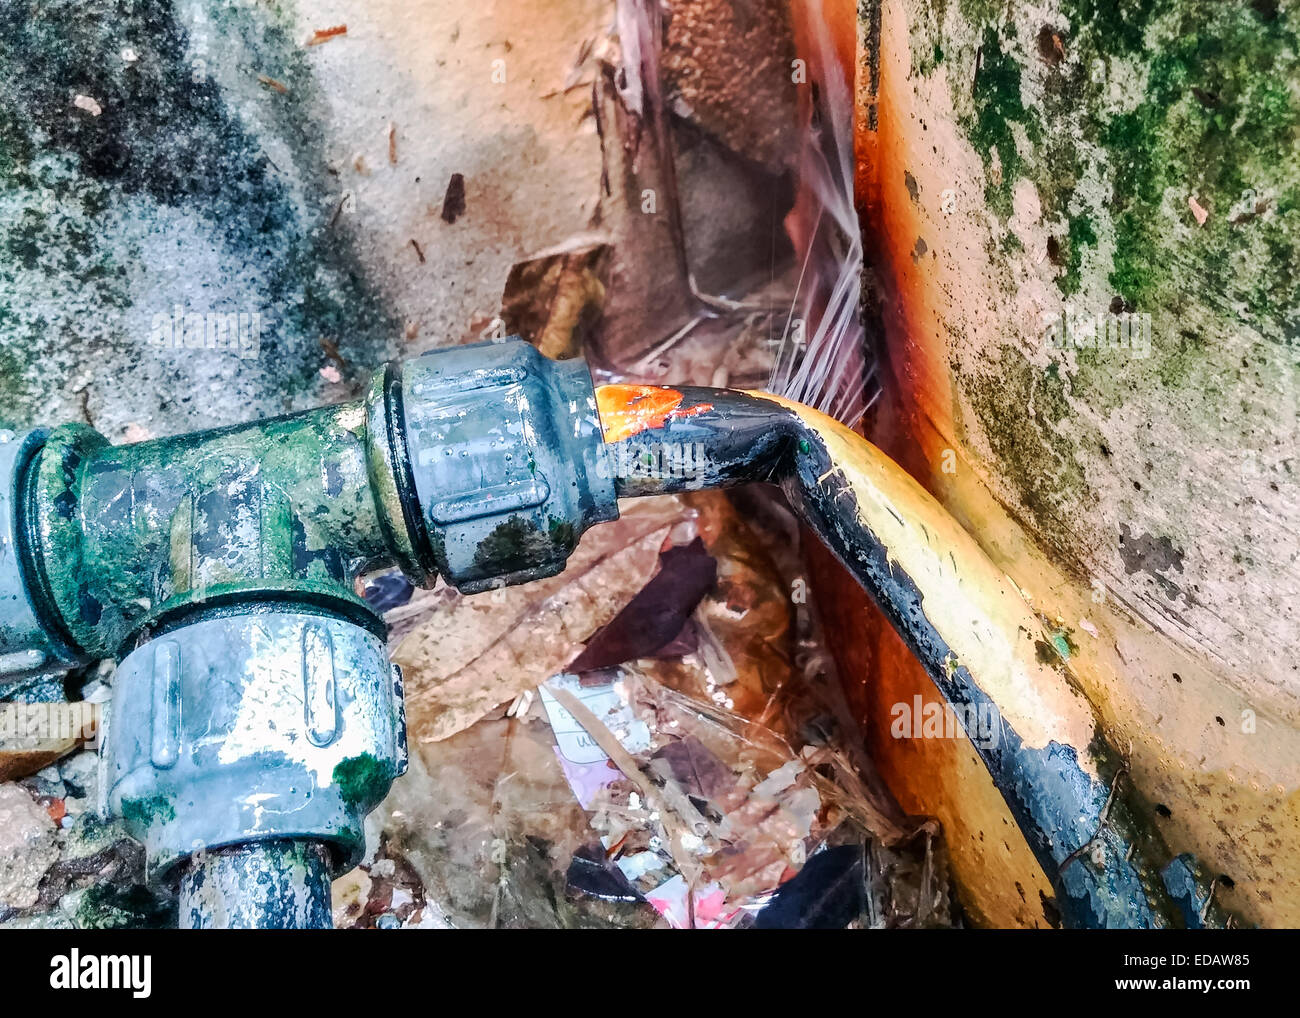 Leakage from old pipes in front of the house wall. - Stock Image